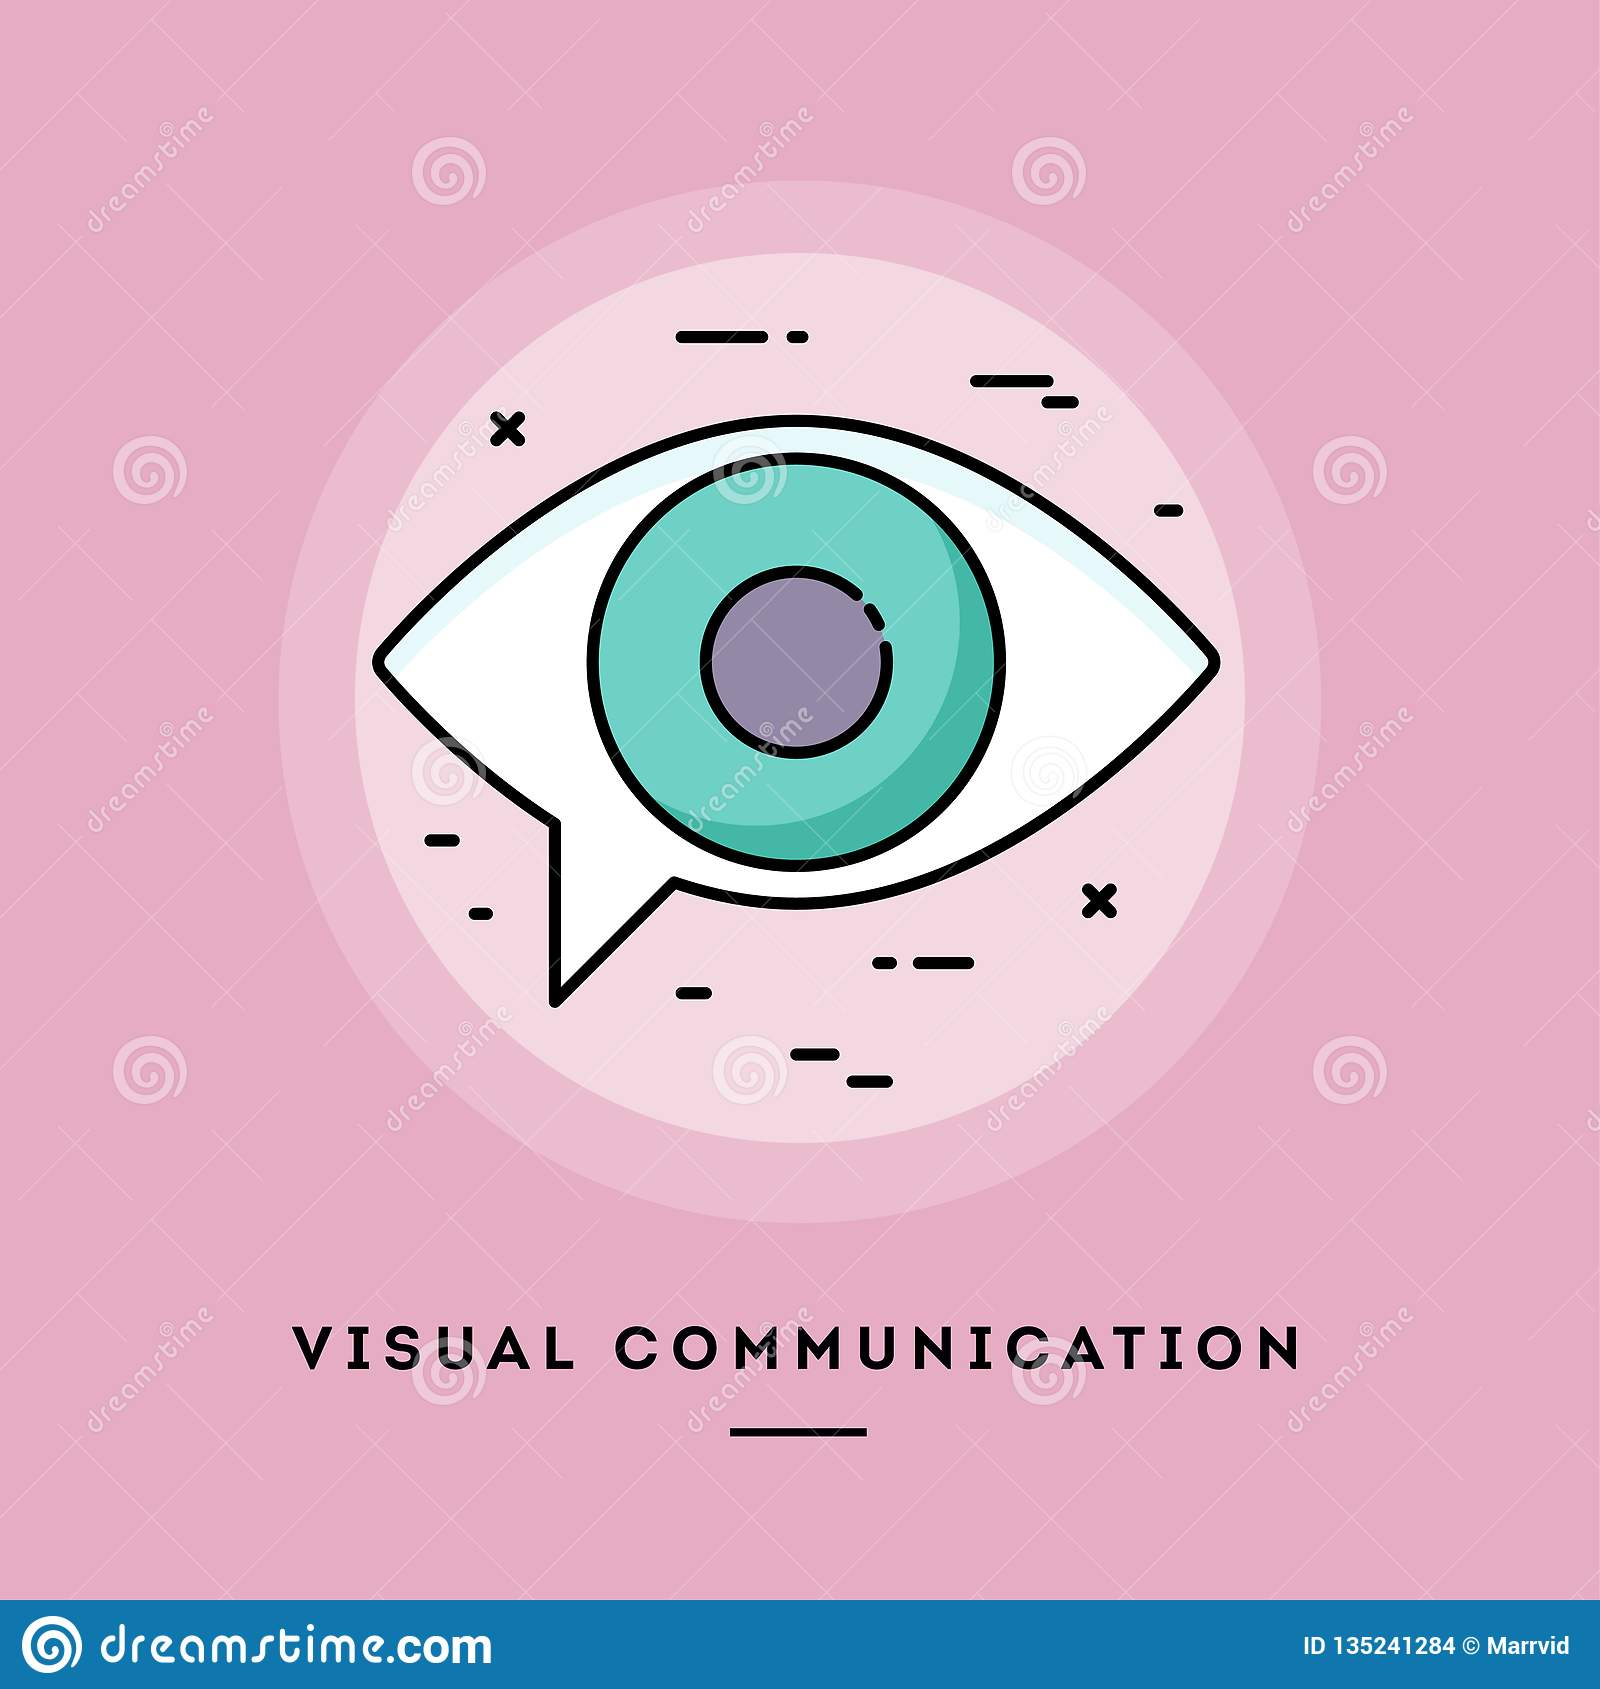 Visual Communication Stock Illustrations 25 061 Visual Communication Stock Illustrations Vectors Clipart Dreamstime